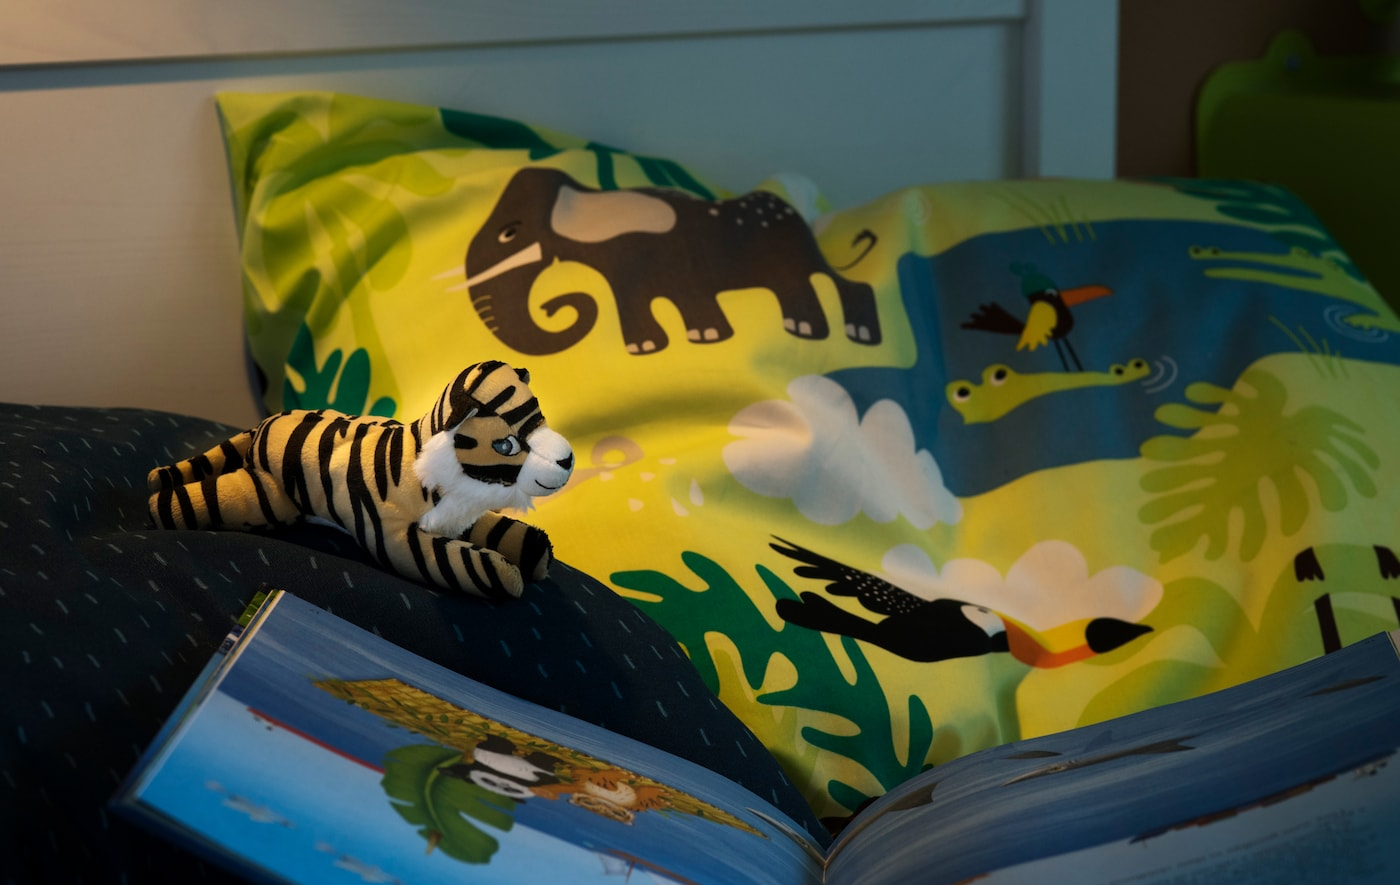 Let your child sleep comfortably in soft bed linen made from lyocell and sustainable cotton! Try IKEA DJUNGELSKOG quilt cover and pillow case with animal print.